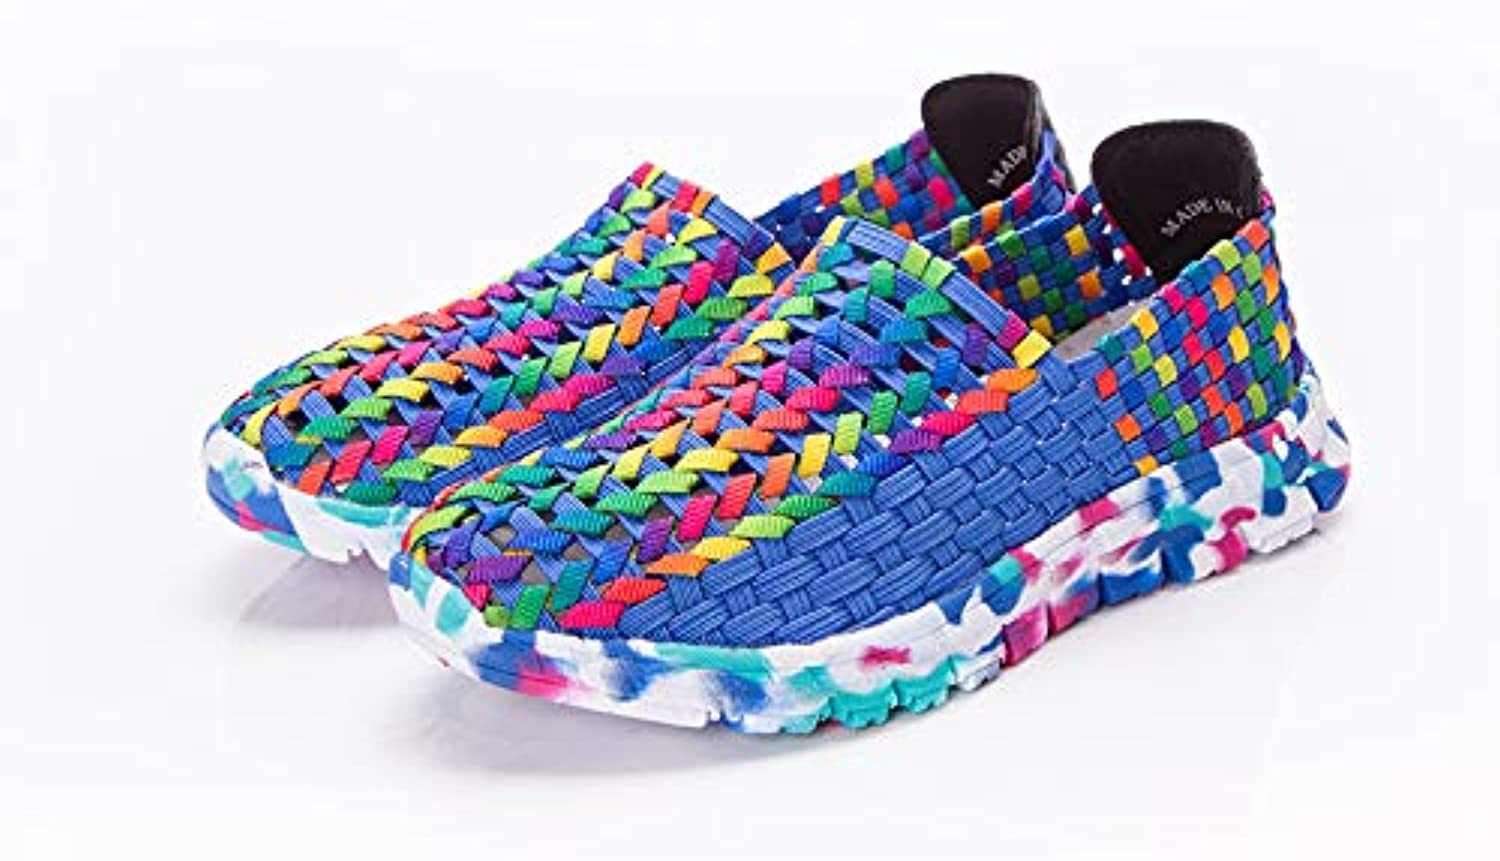 Otado Outdoors Clothing & shoes - Summer US Size 5-10 Women Hand Woven Breathable Net Hollows Casual Beach Flats Mixed colors shoes - (Size(US)  8, color  bluee)